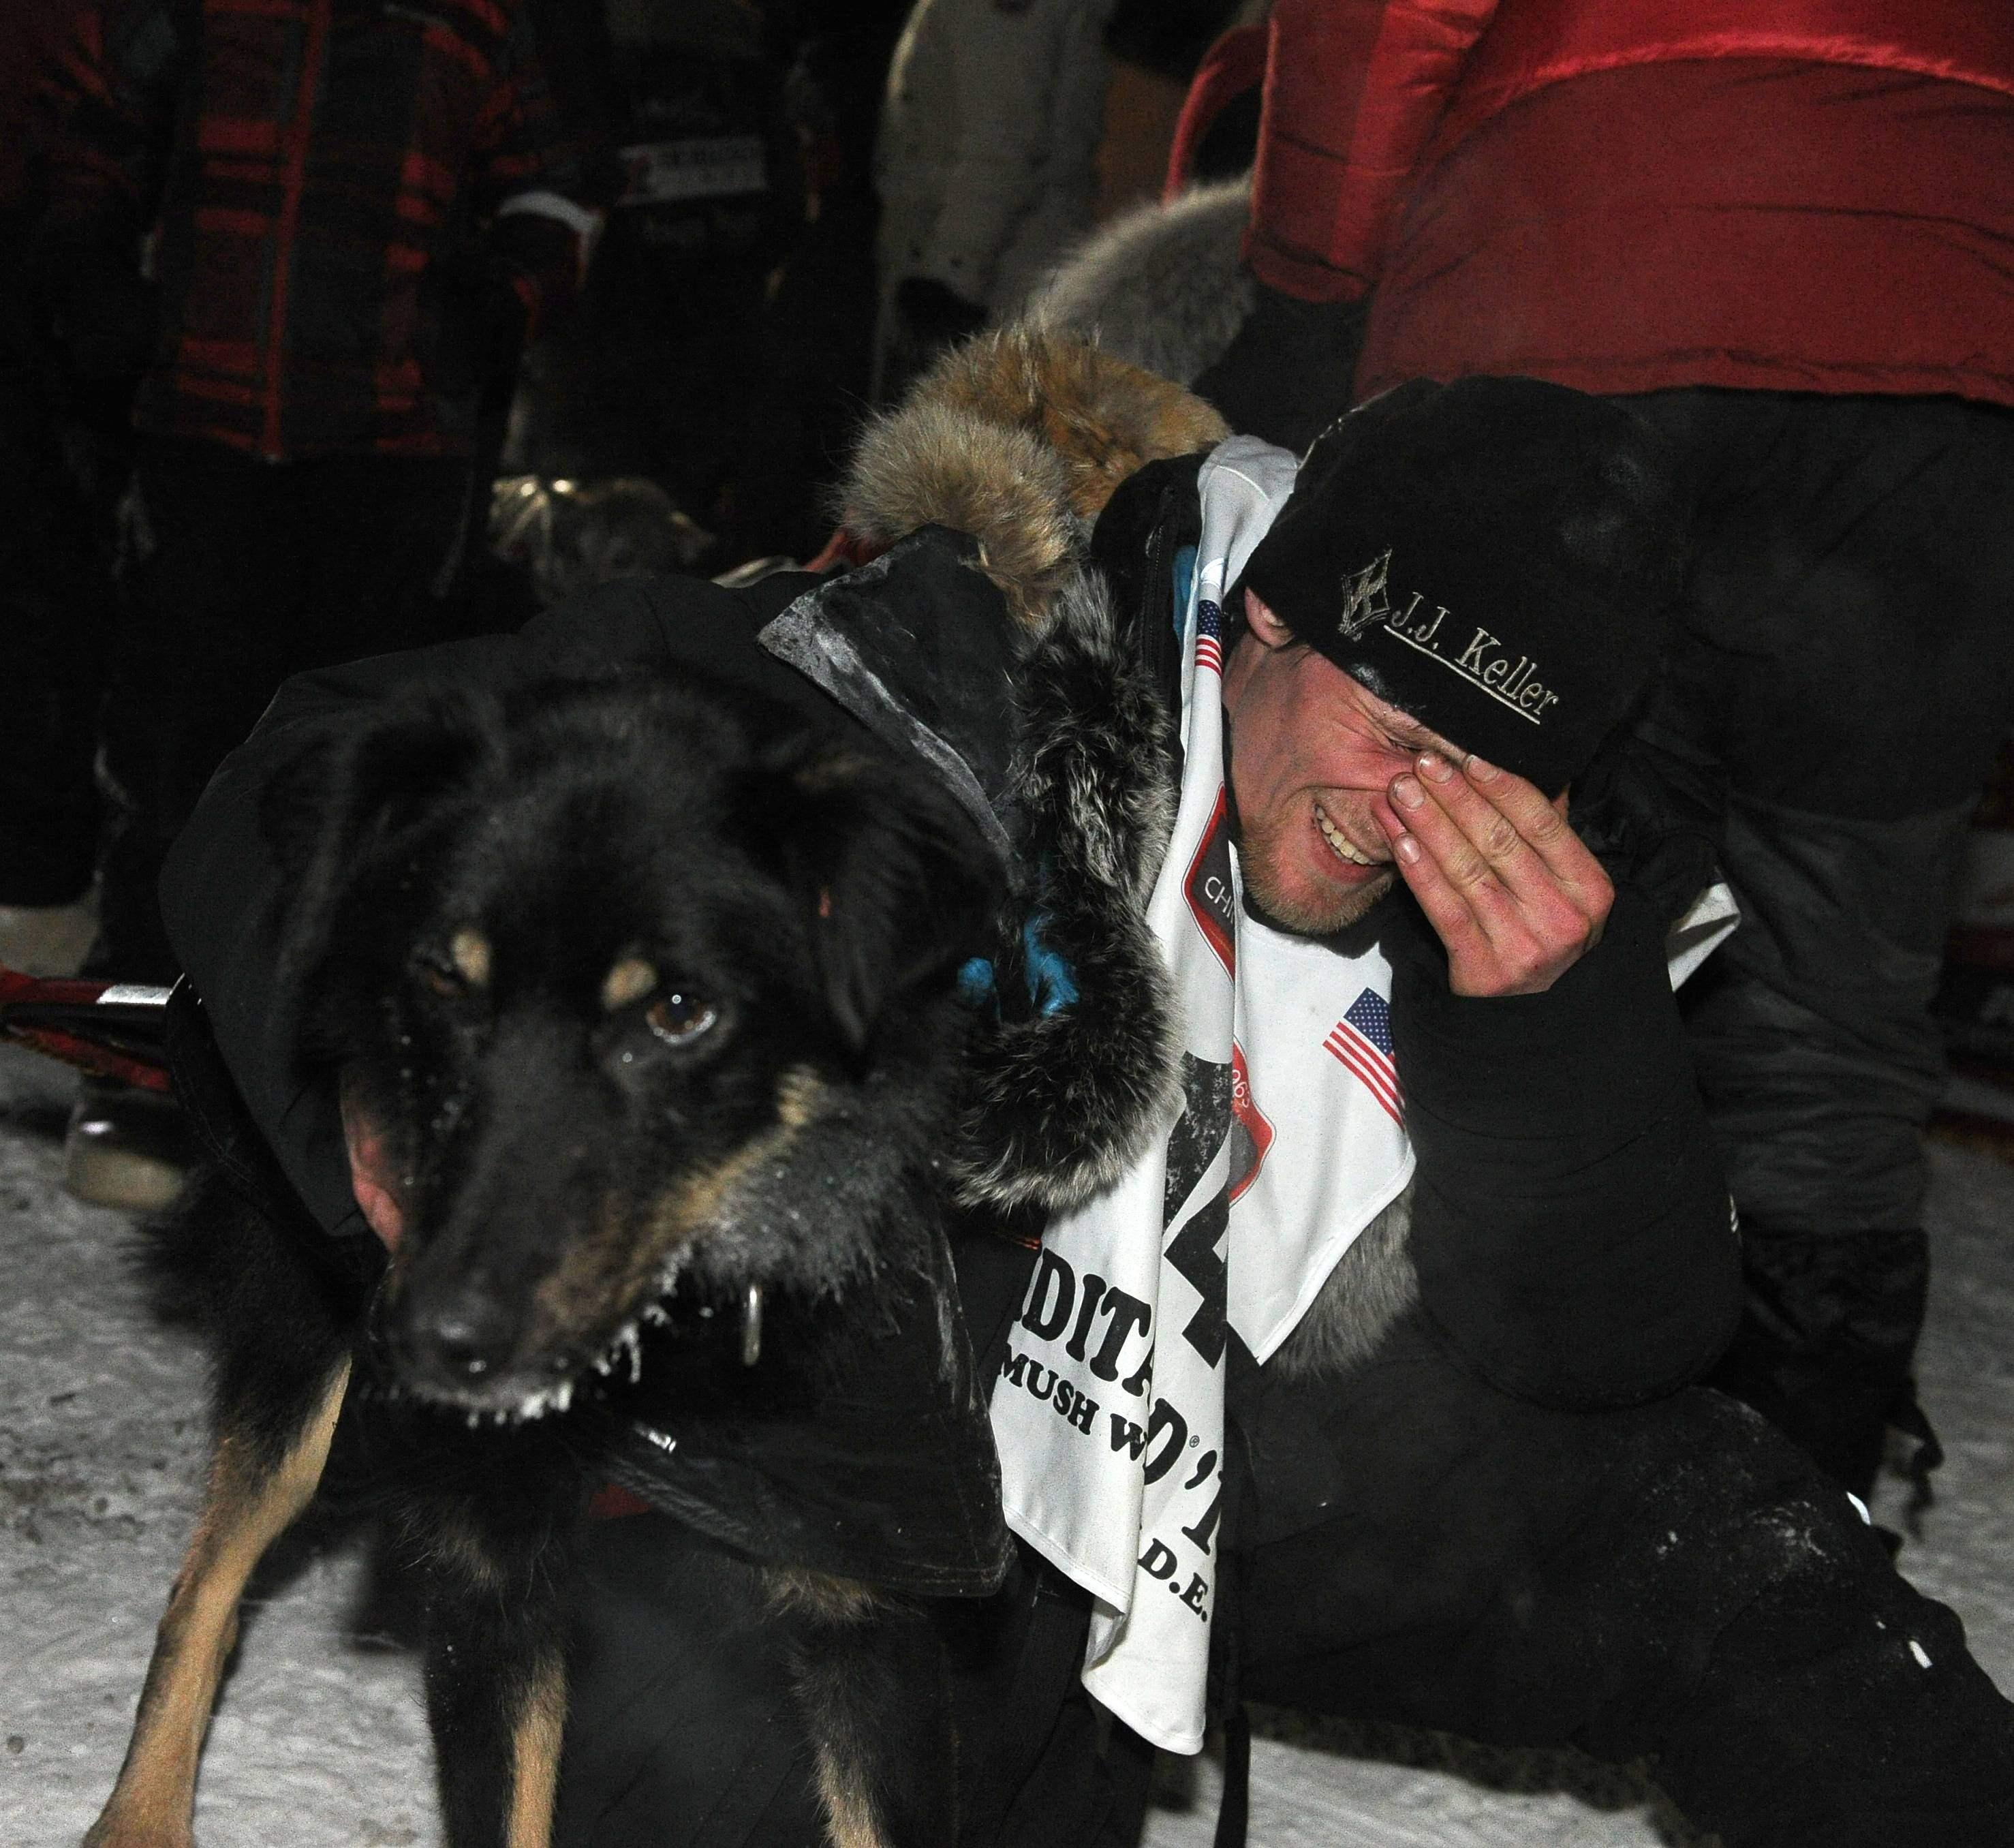 Dallas Seavey holds his lead dog Beatle after winning the 2014 Iditarod Trail Sled Dog Race in Nome, Alaska, Tuesday, March 11, 2014.